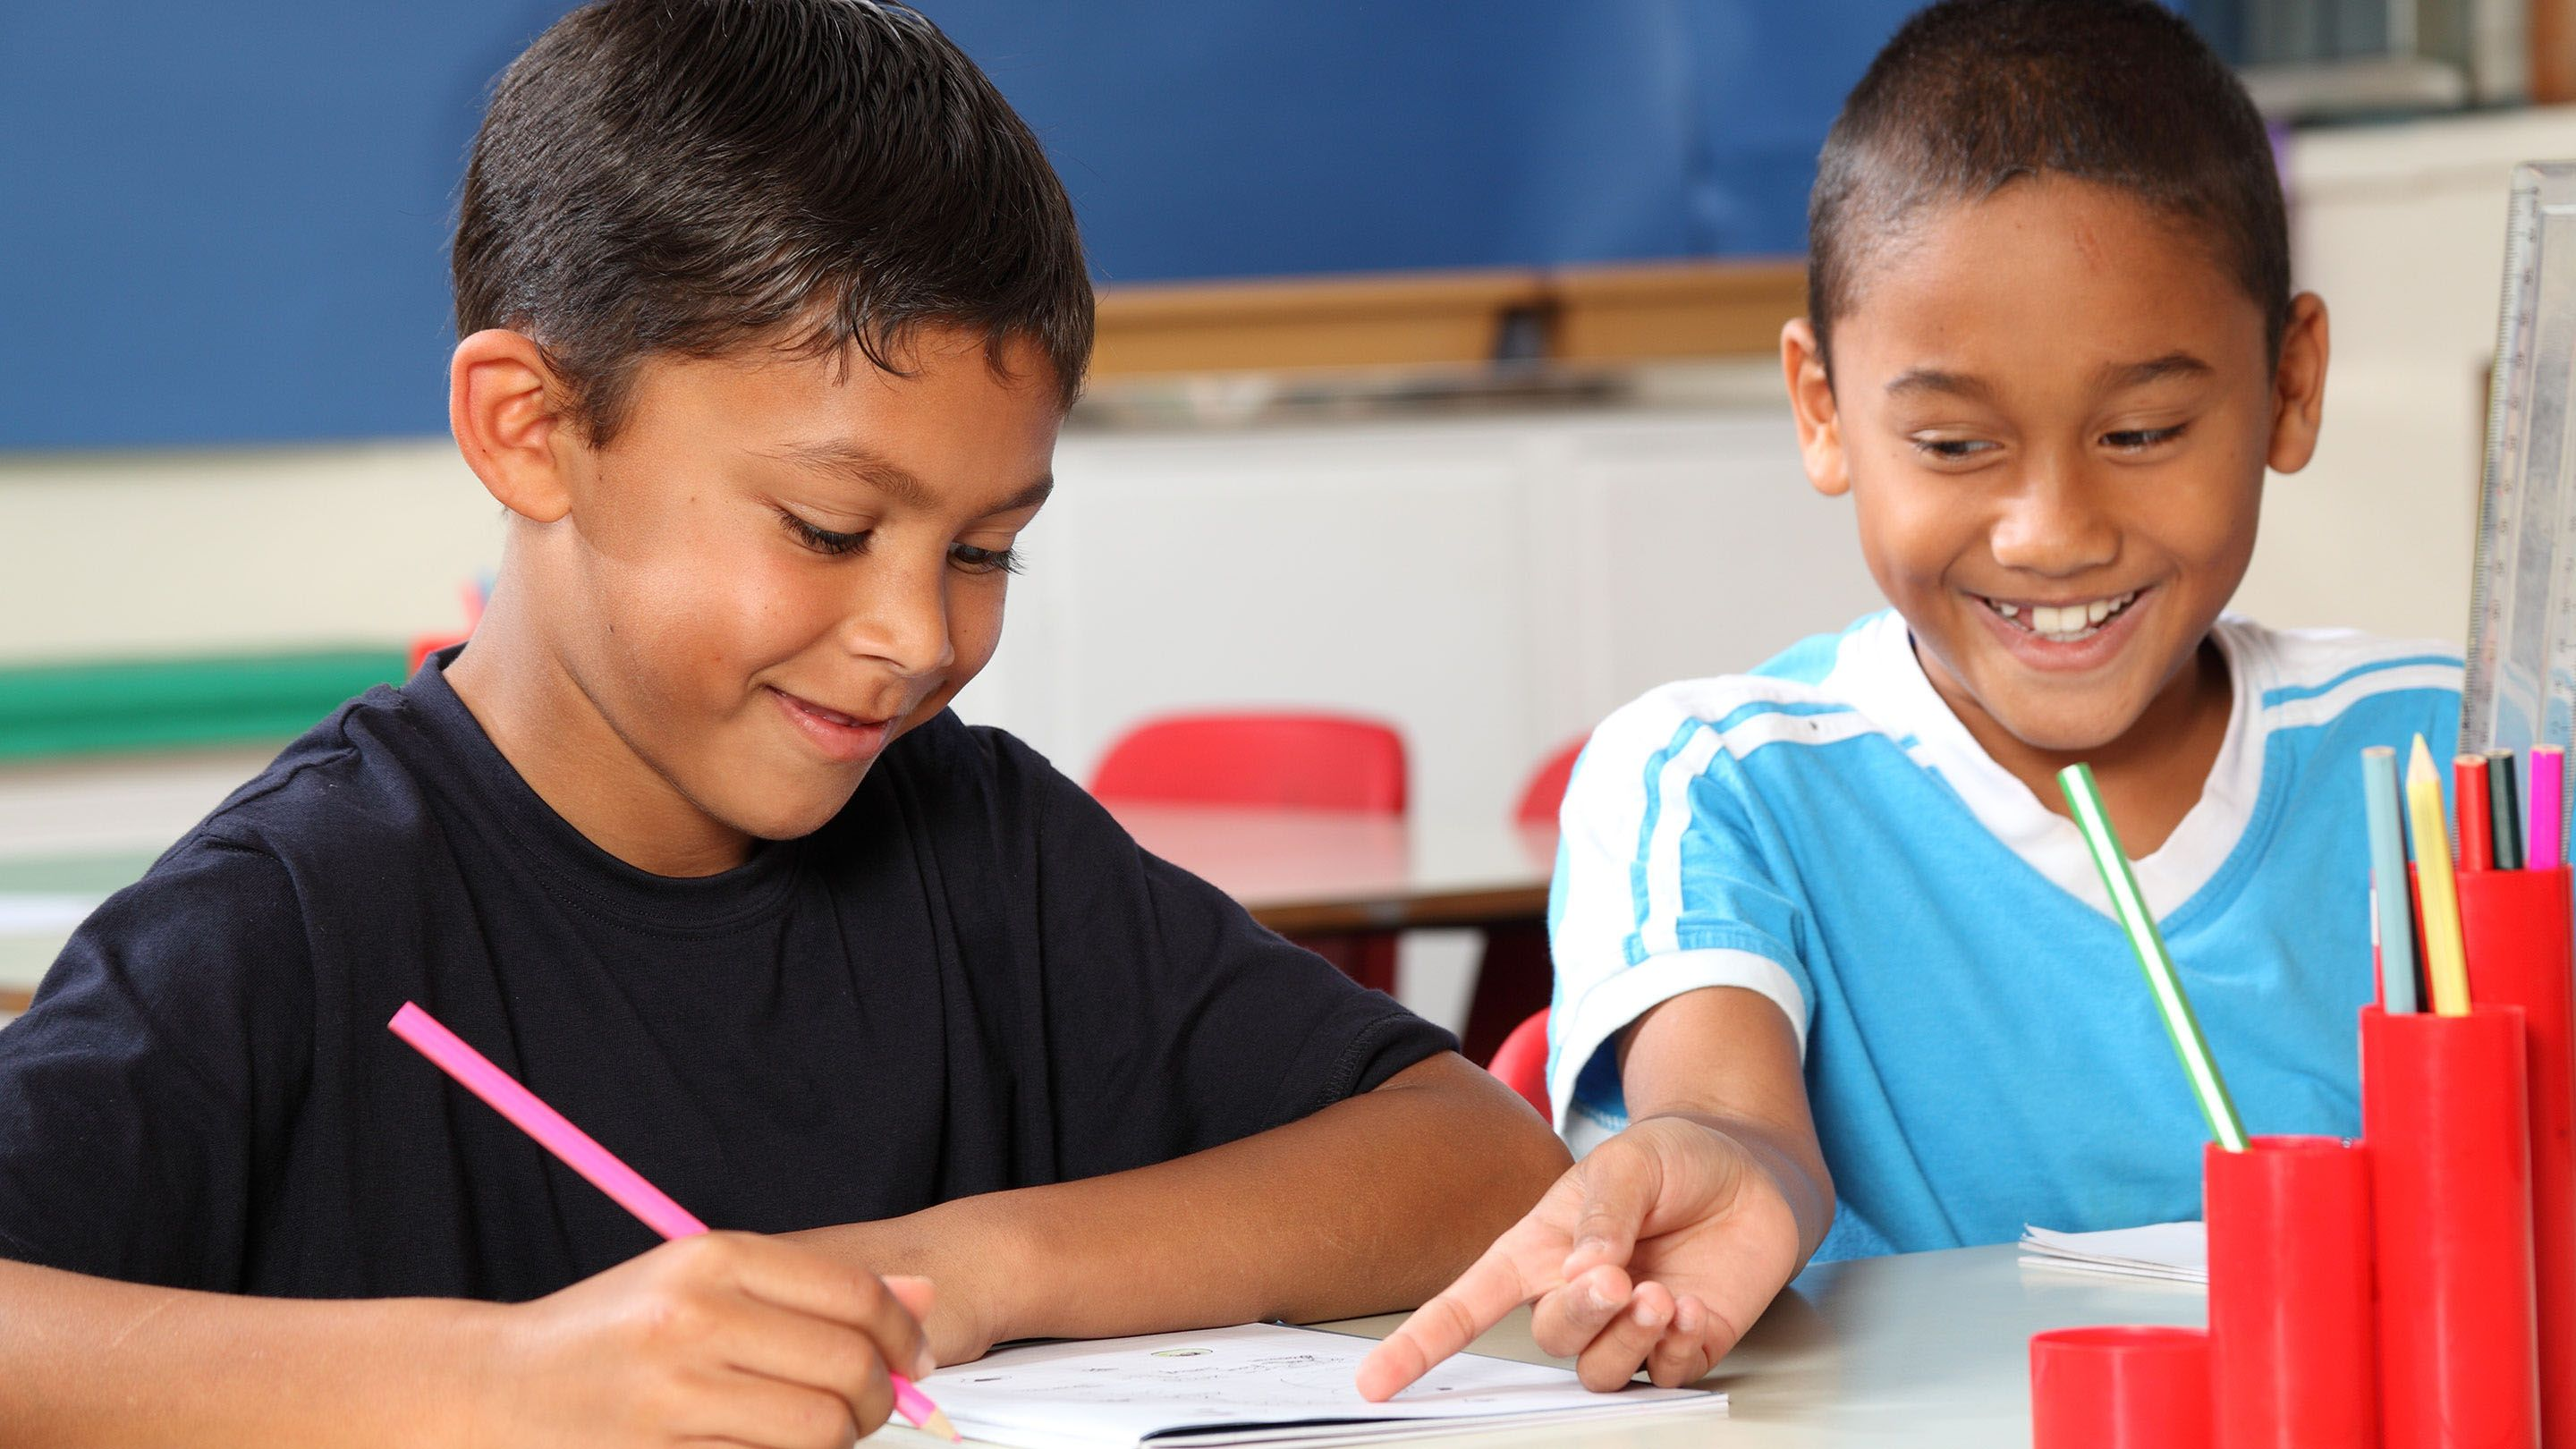 Two elementary school boys sit together, writing and laughing.